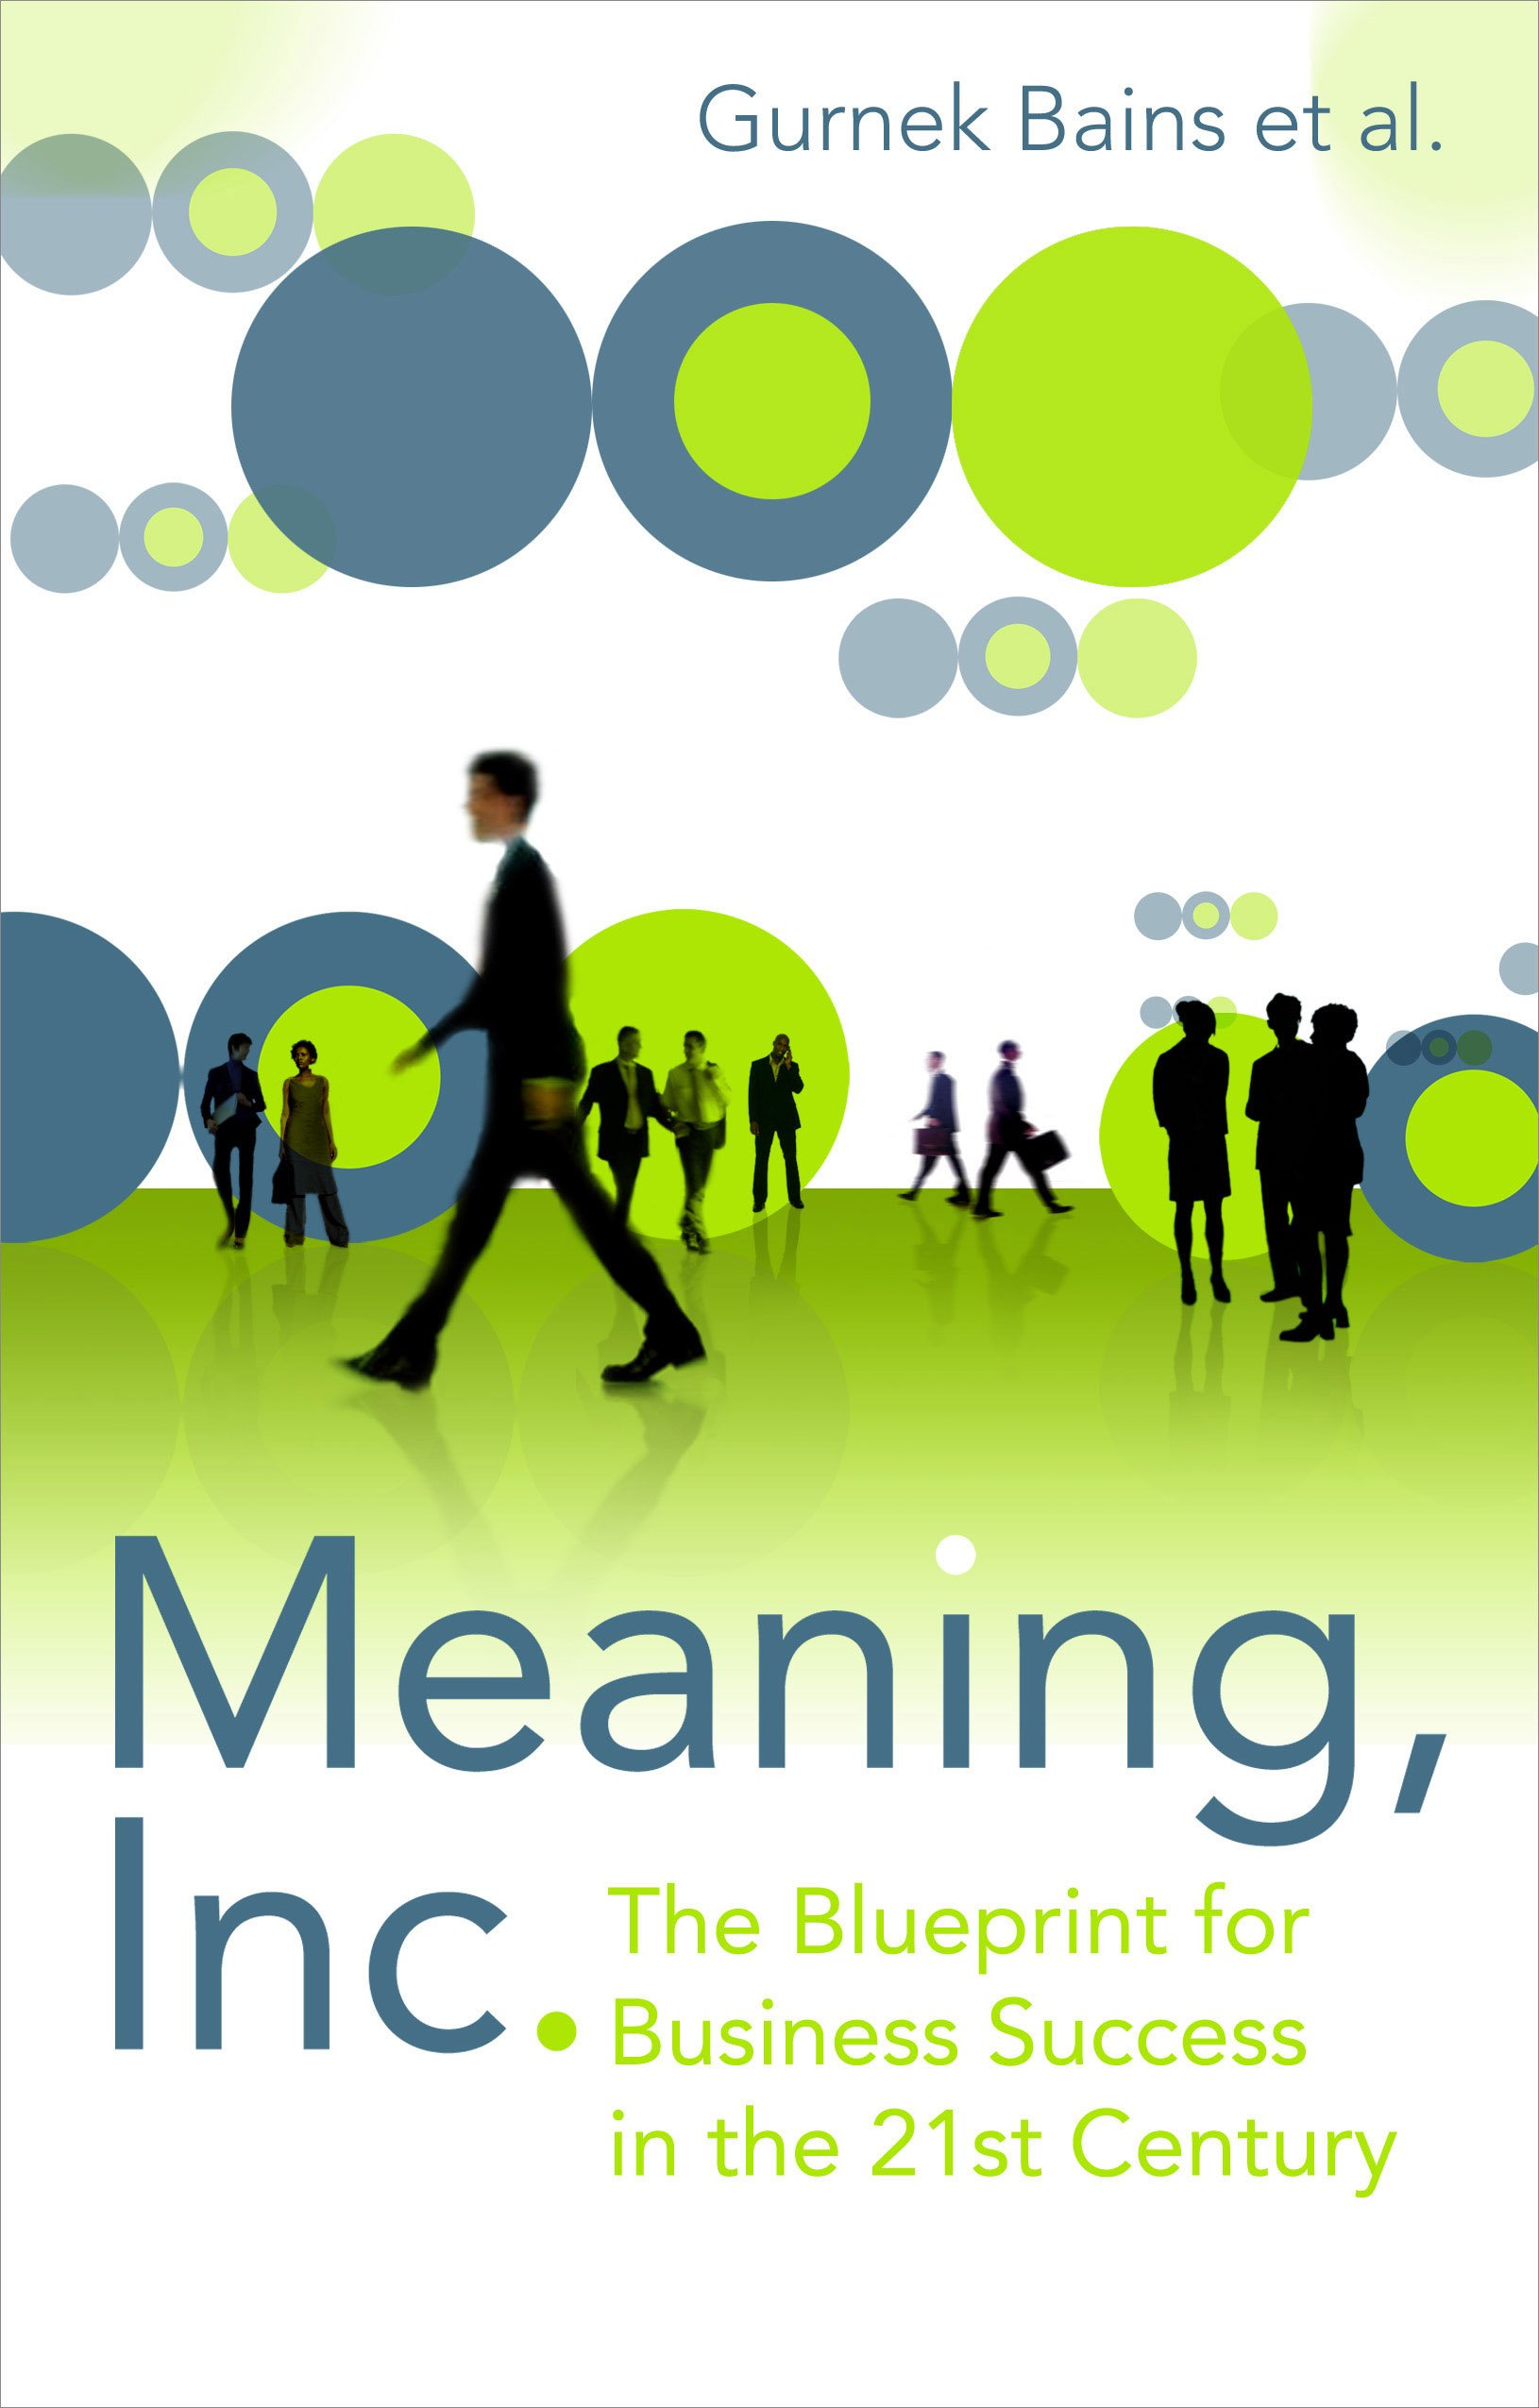 Meaning inc the blueprint for business success in the 21st meaning inc the blueprint for business success in the 21st century gurnek bains 9781861978837 amazon books malvernweather Images